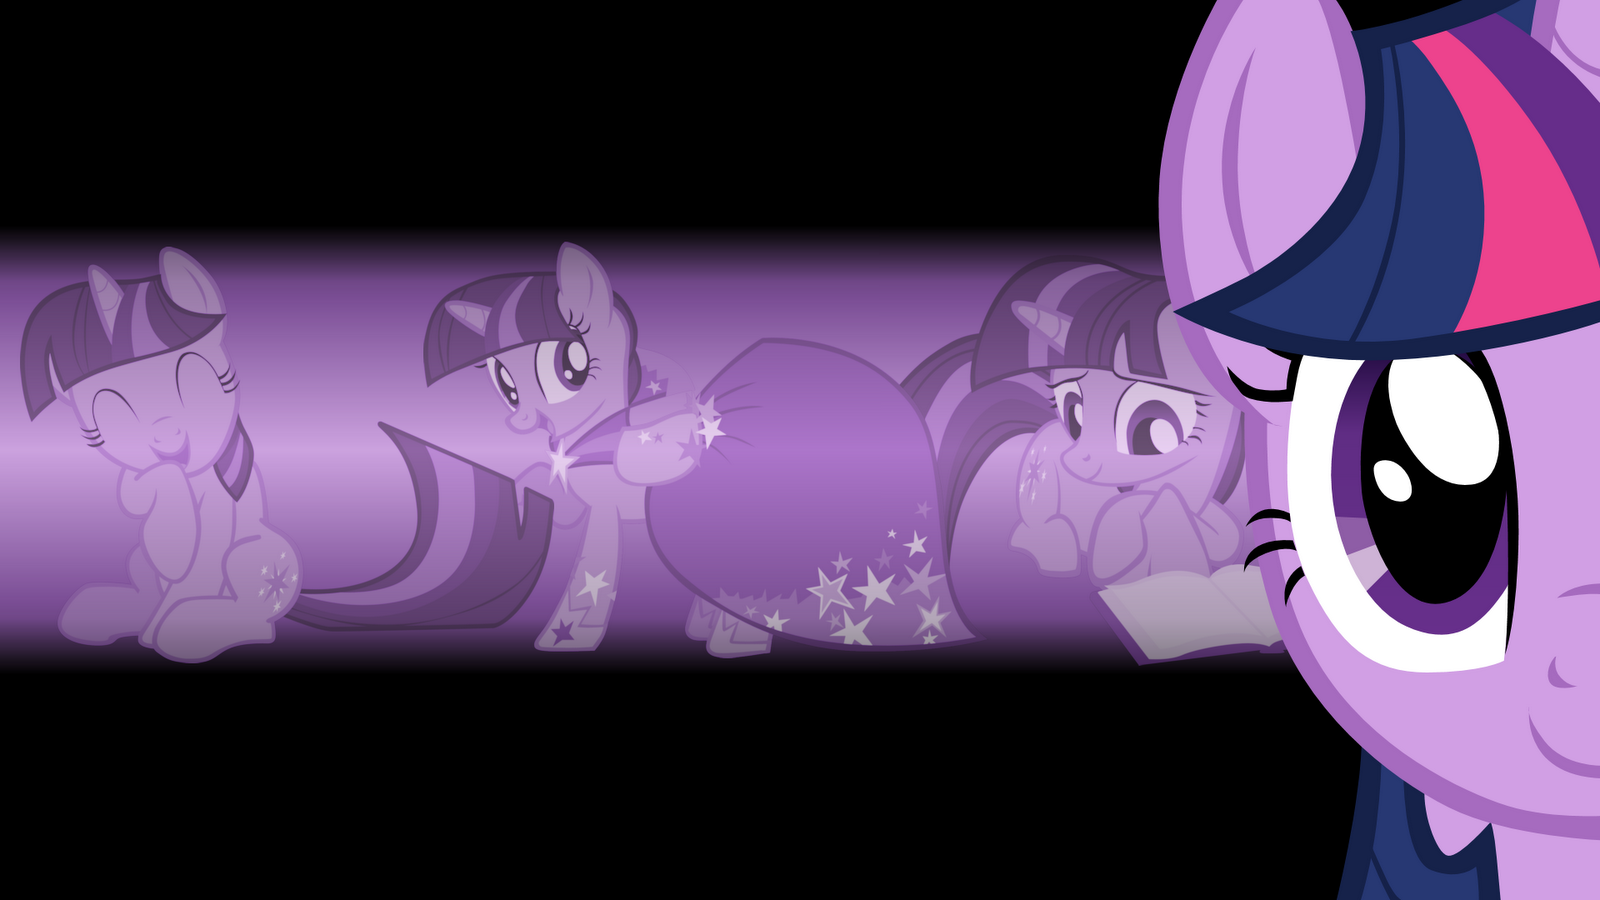 http://1.bp.blogspot.com/-mNcoZ-0WfHc/UJB814pSKaI/AAAAAAAAAkg/aRixqLCx4BU/s1600/83560-my-little-pony-friendship-is-magic-twi-wallpaper.png